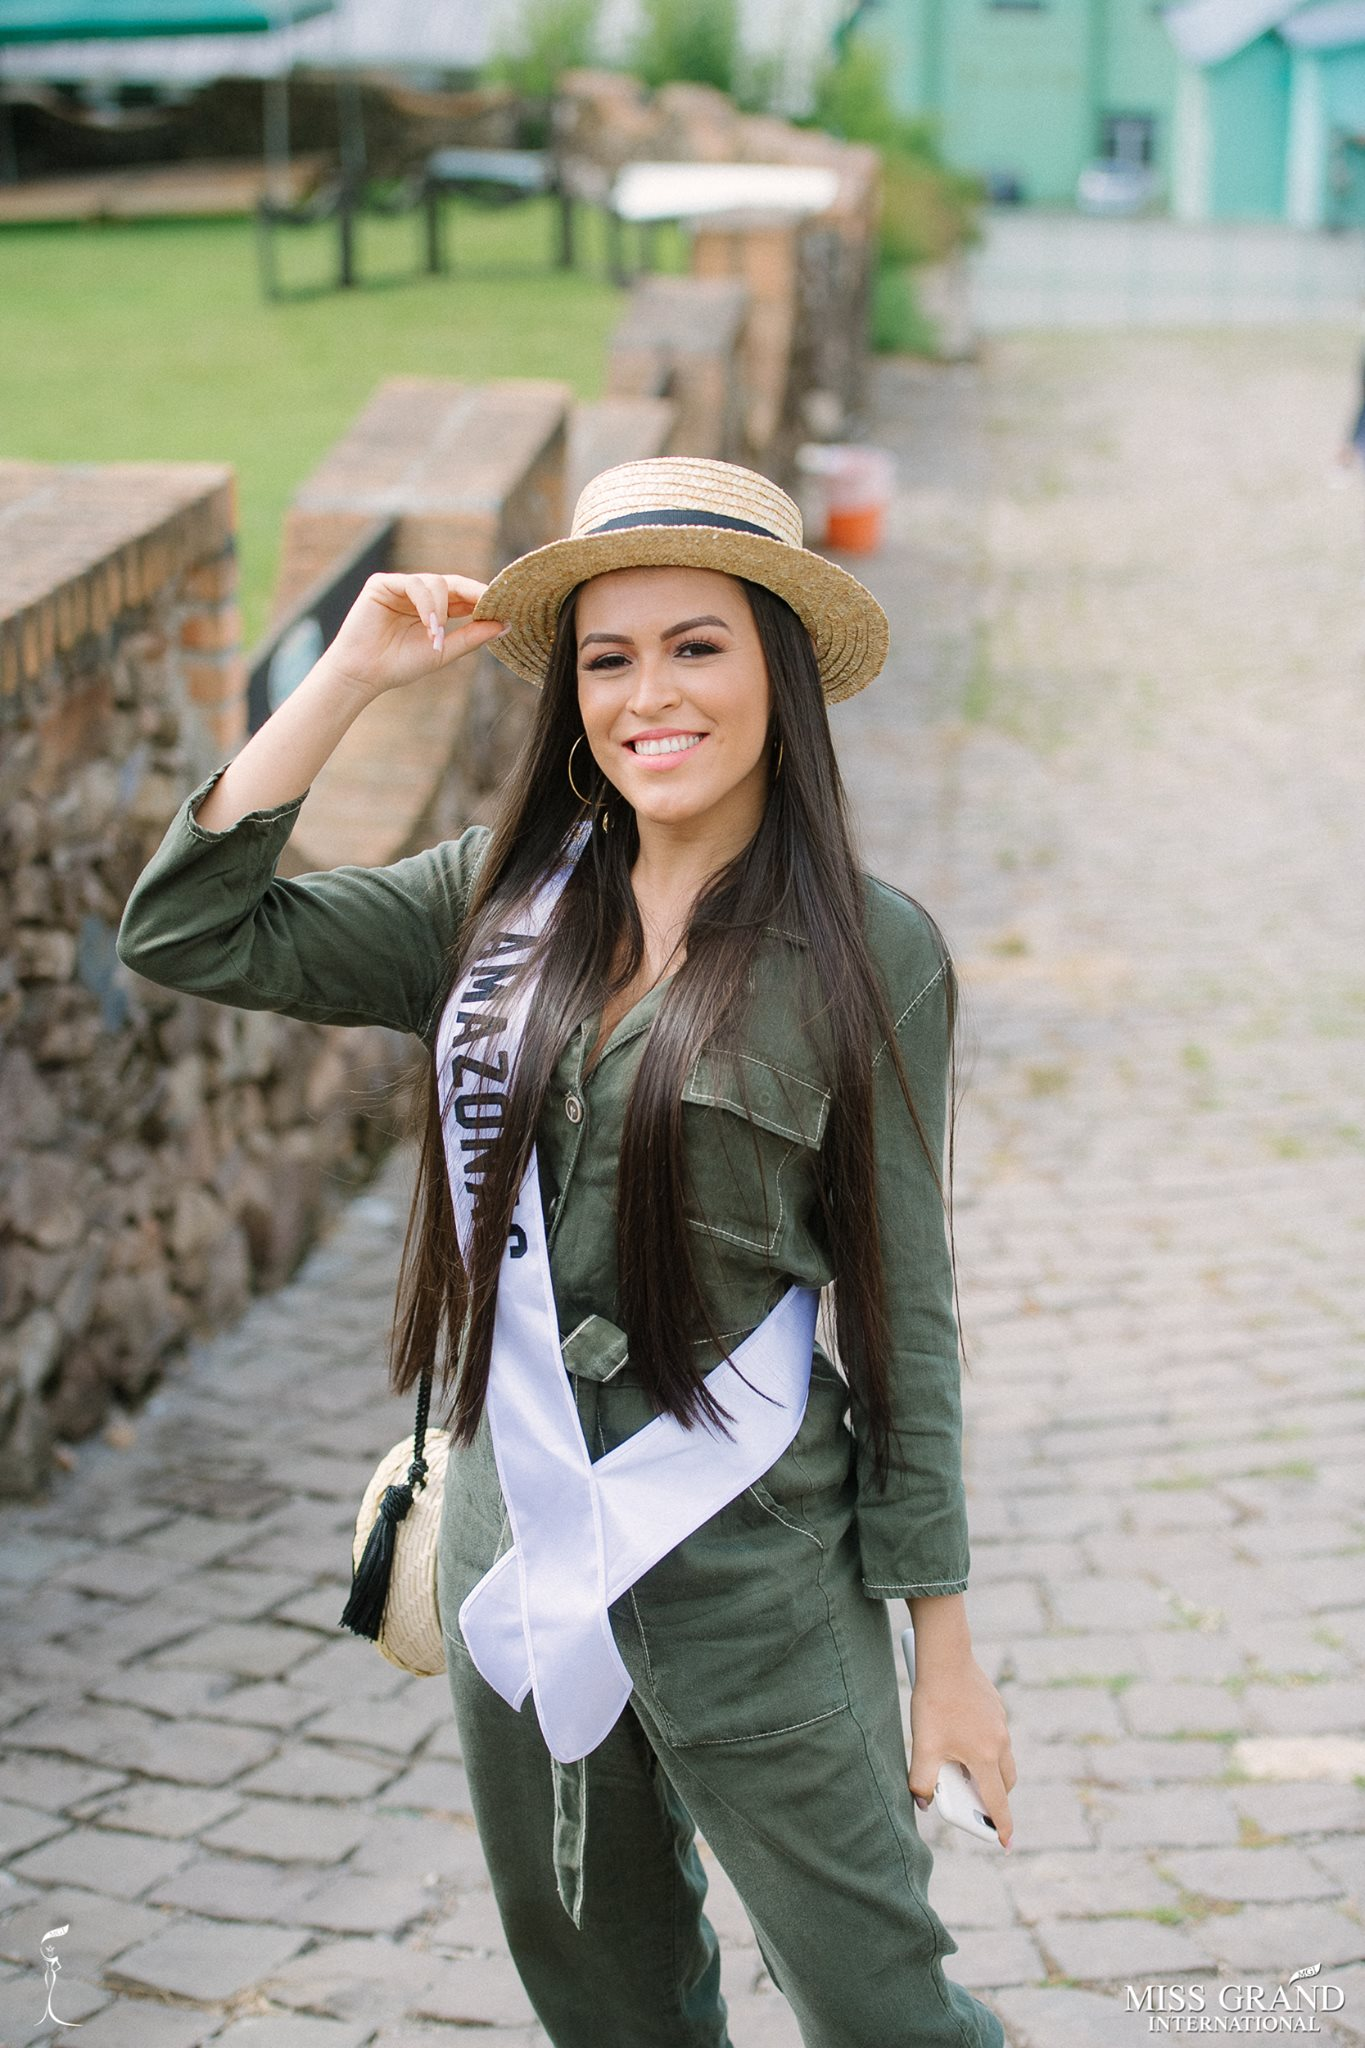 candidatas a miss grand brasil 2019. final: 28 feb. - Página 18 Jfni9jki